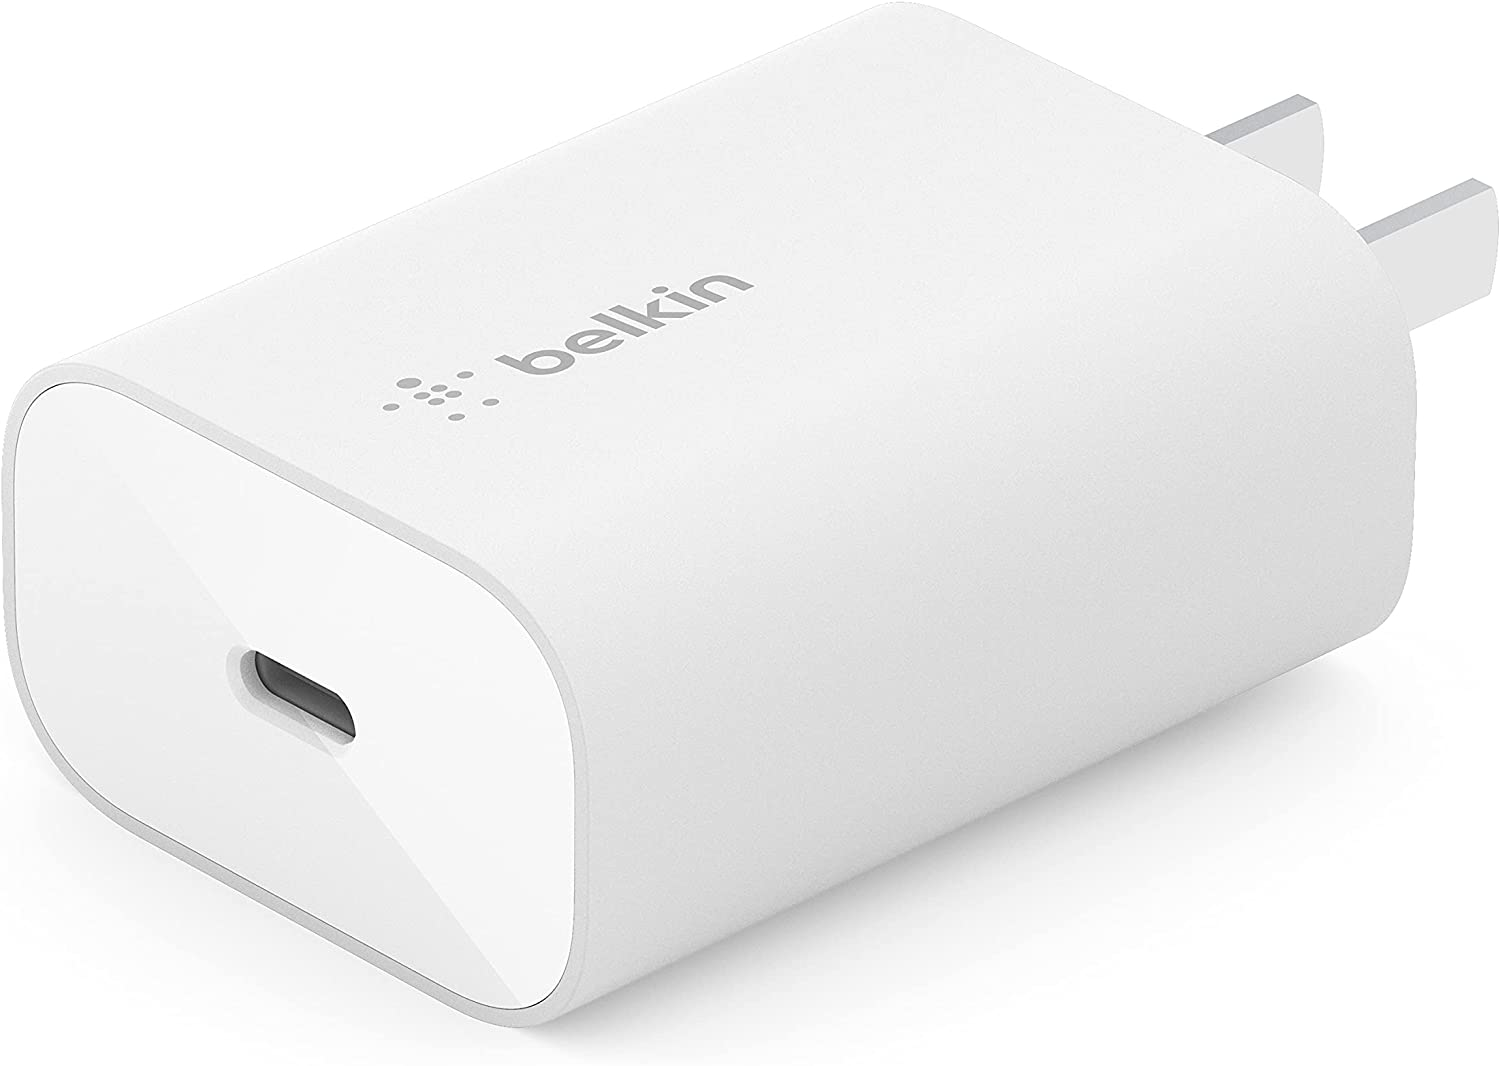 Belkin 25W Power Delivery USB C PPS Wall Charger, USB Type C PD Power Adapter PPS Enabled Fast Charger for iPhone 12, 12 Pro, 12 Pro Max, Mini, Galaxy S20, Ultra, Note 20, Galaxy Tab, iPad and More